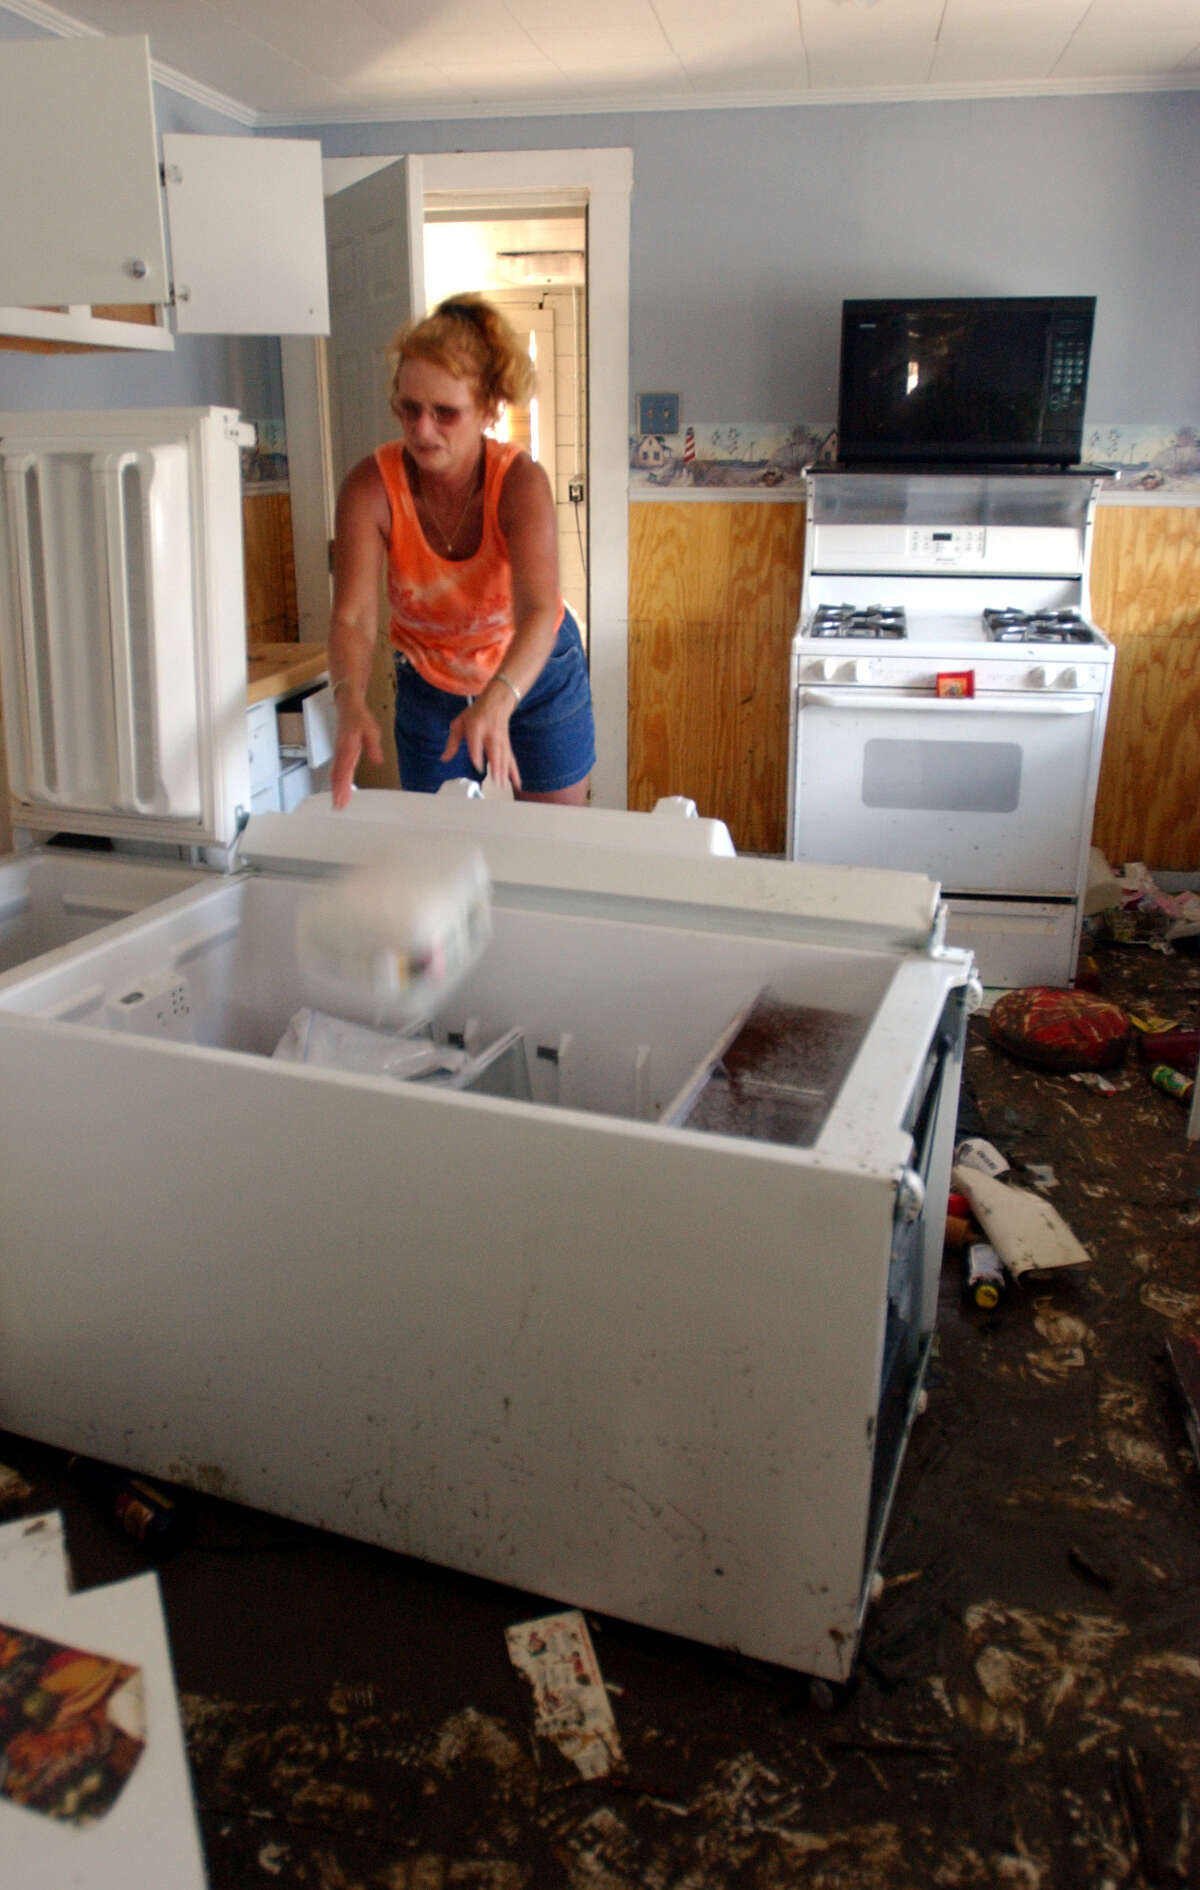 Glenda Eldridge tossed food from her cupboards into her refrigerator on Oct. 3, 2005, as she salvaged what she could from her home in Sabine Pass. Hurricane Rita hit the Gulf Coast town on Sept. 24, 2005, flooding the area and leaving more than 75 percent of the building uninhabitable.